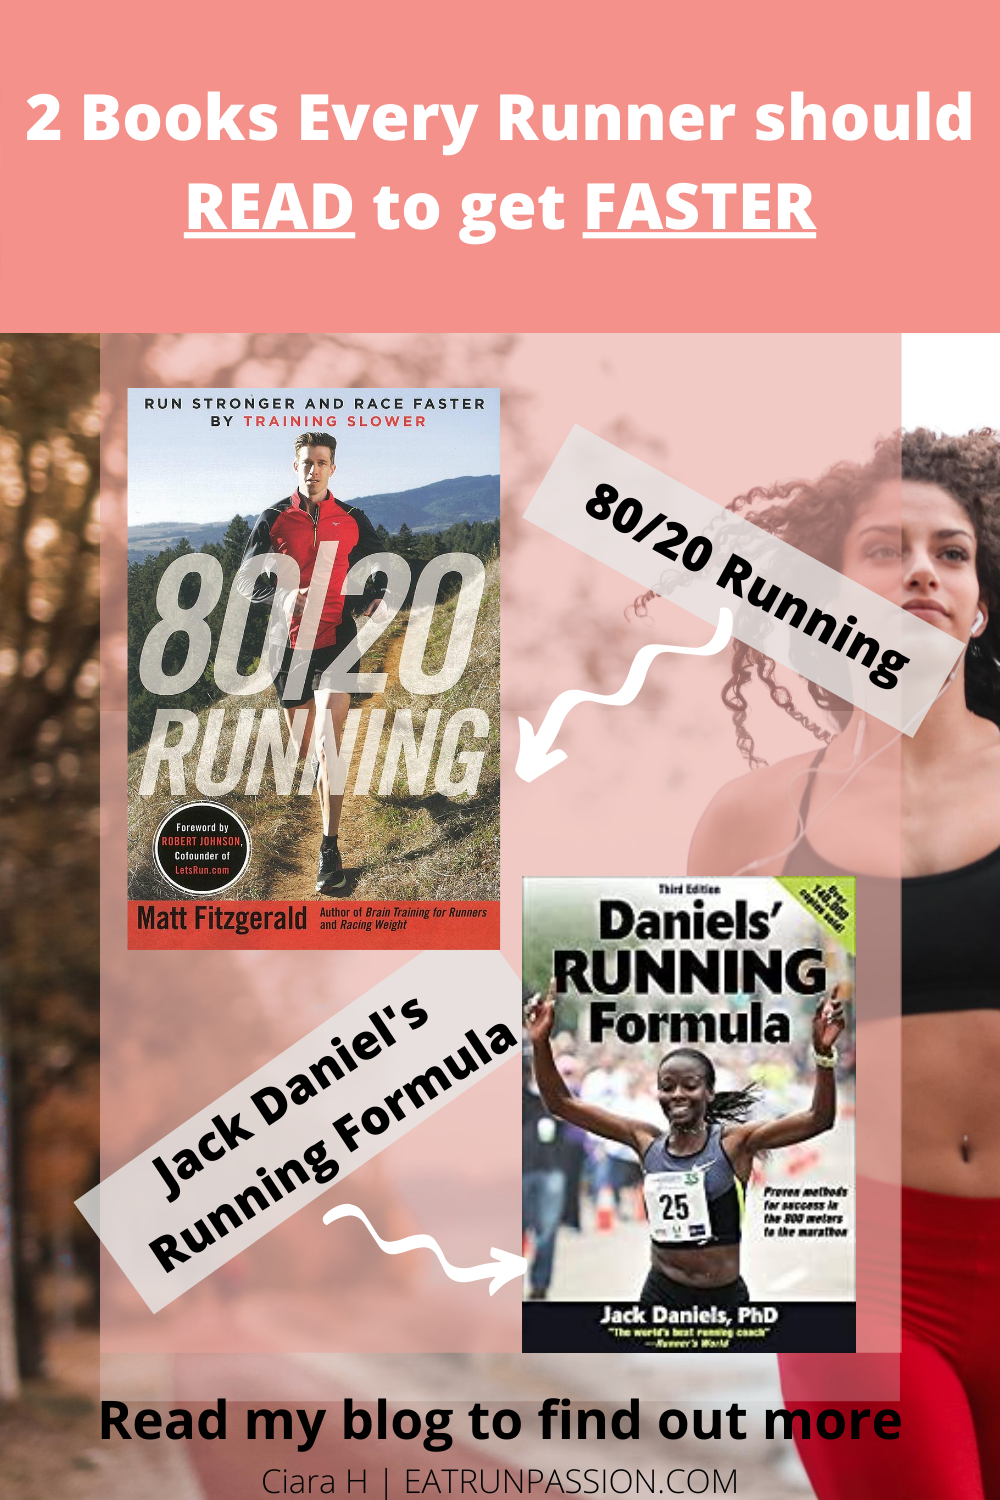 Reading can help you save money on expensive runner marathon, half-marathon, 10km & 5km training training plans. It can be hard to pick out info relevant to you. BUT great satisfaction can come from creating your own running plan based on learning. The added bonus is when you implement what you have learnt and you PR. My fastest 10km time of 39mins came from following Jack Daniel's formula principles. Link takes you to some fun workout suggestions based on ideas from the two books #runningtips